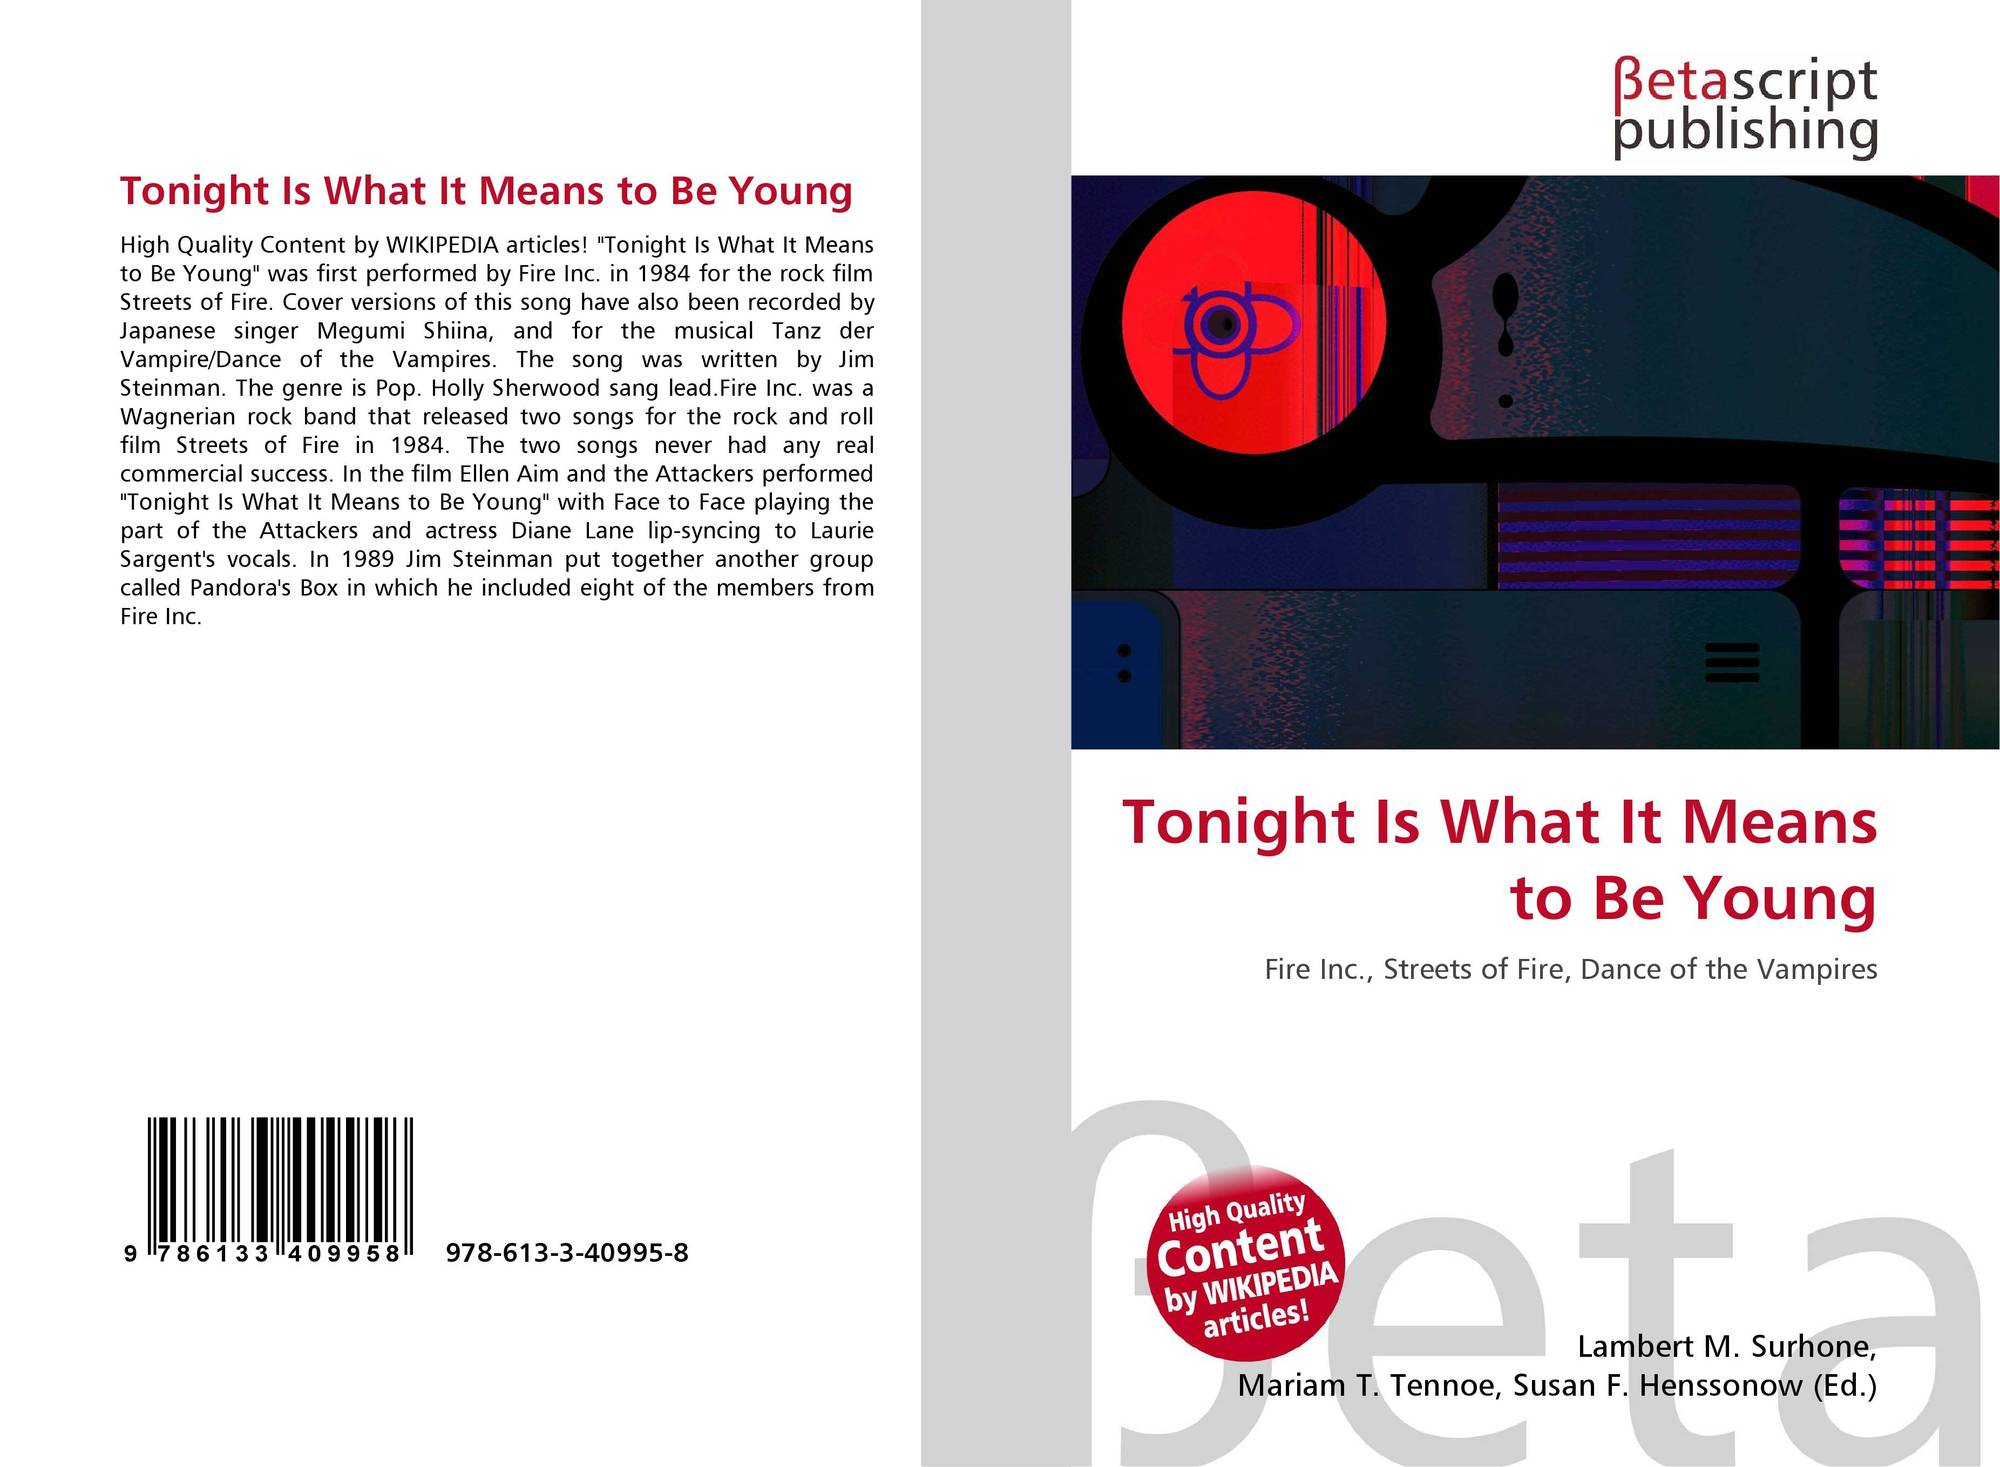 Tonight is what it means to be young